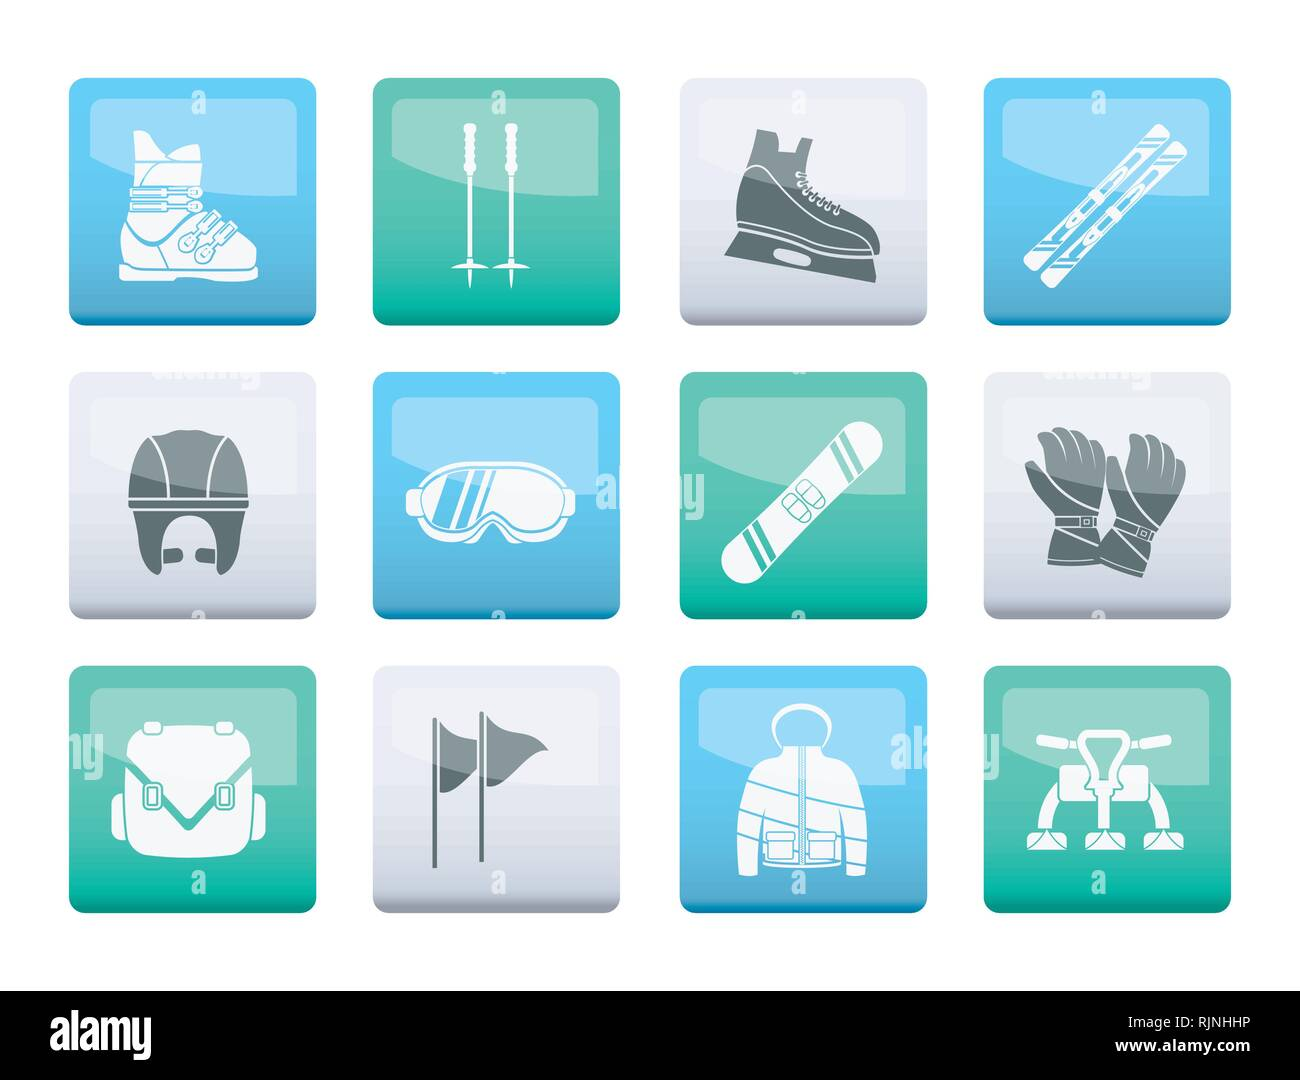 Ski and snowboard equipment icons over color background - vector icon set - Stock Image